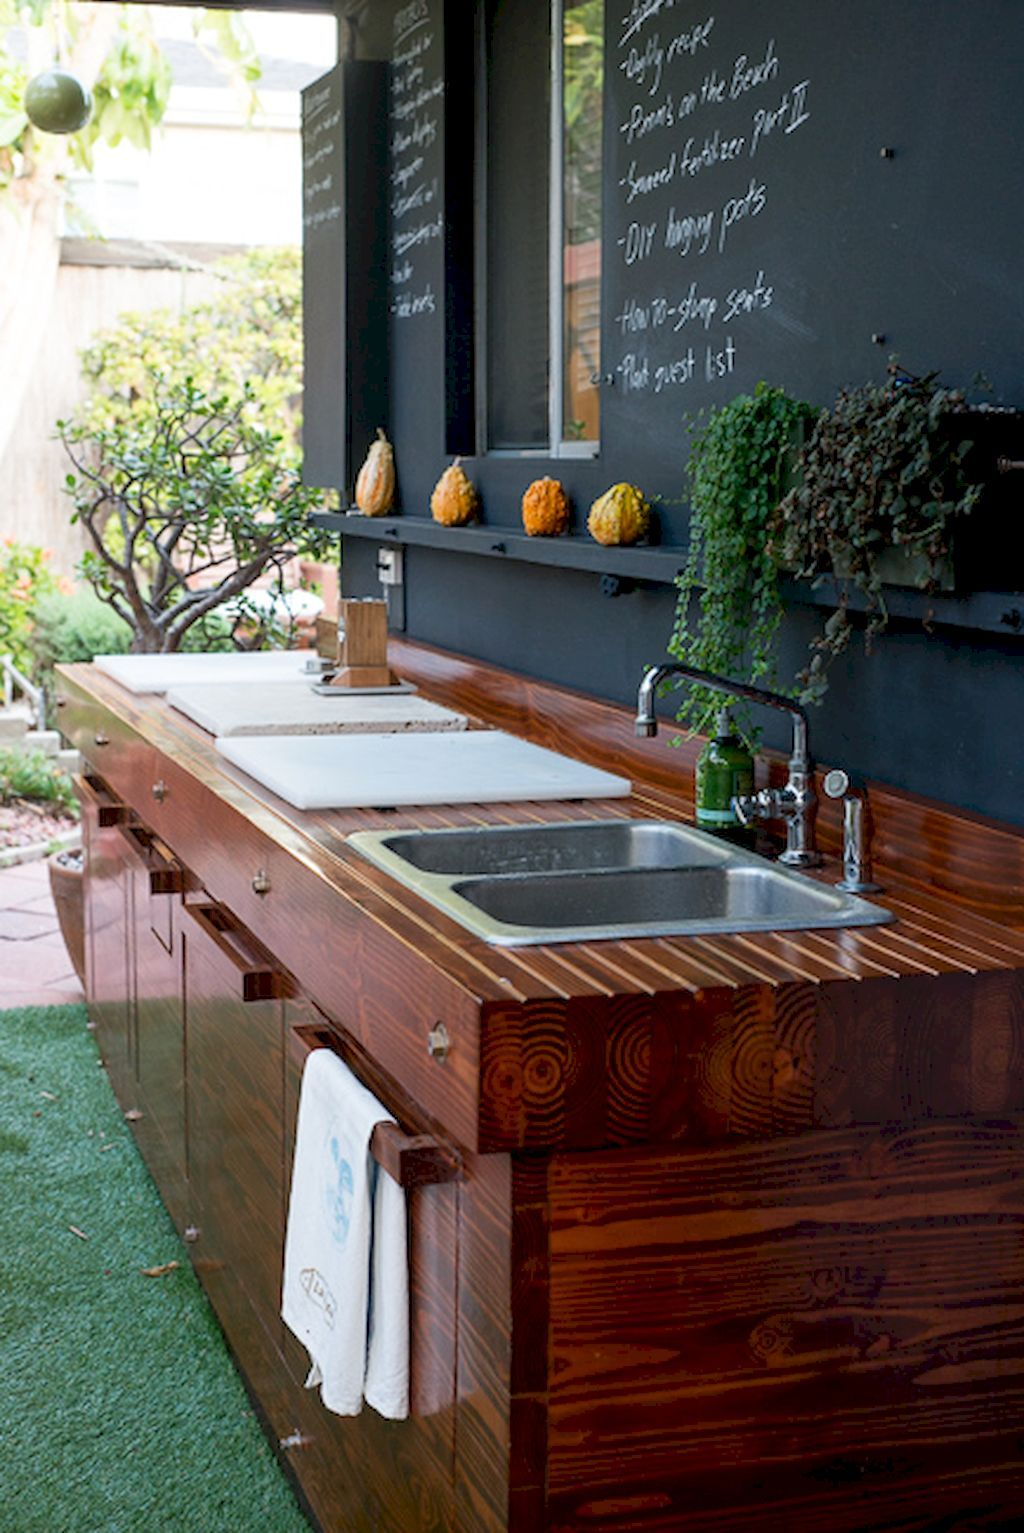 60 amazing diy outdoor kitchen ideas on a budget decor decorating kitchen simple outdoor on outdoor kitchen ideas on a budget id=76306